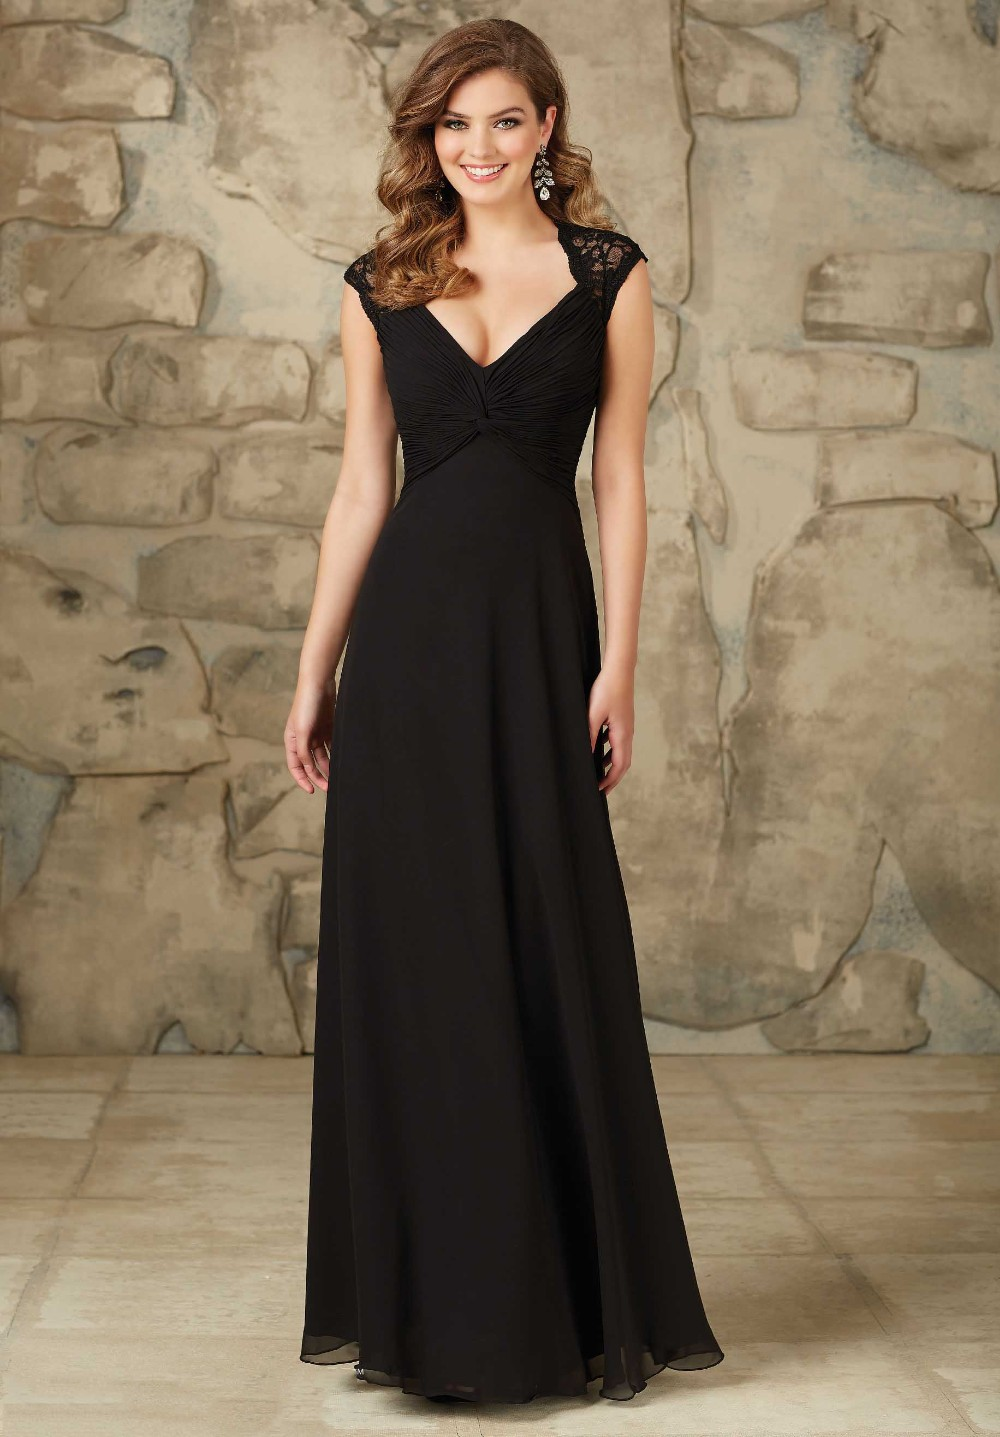 Long Black Bridesmaid Dresses Promotion-Shop for Promotional Long ...